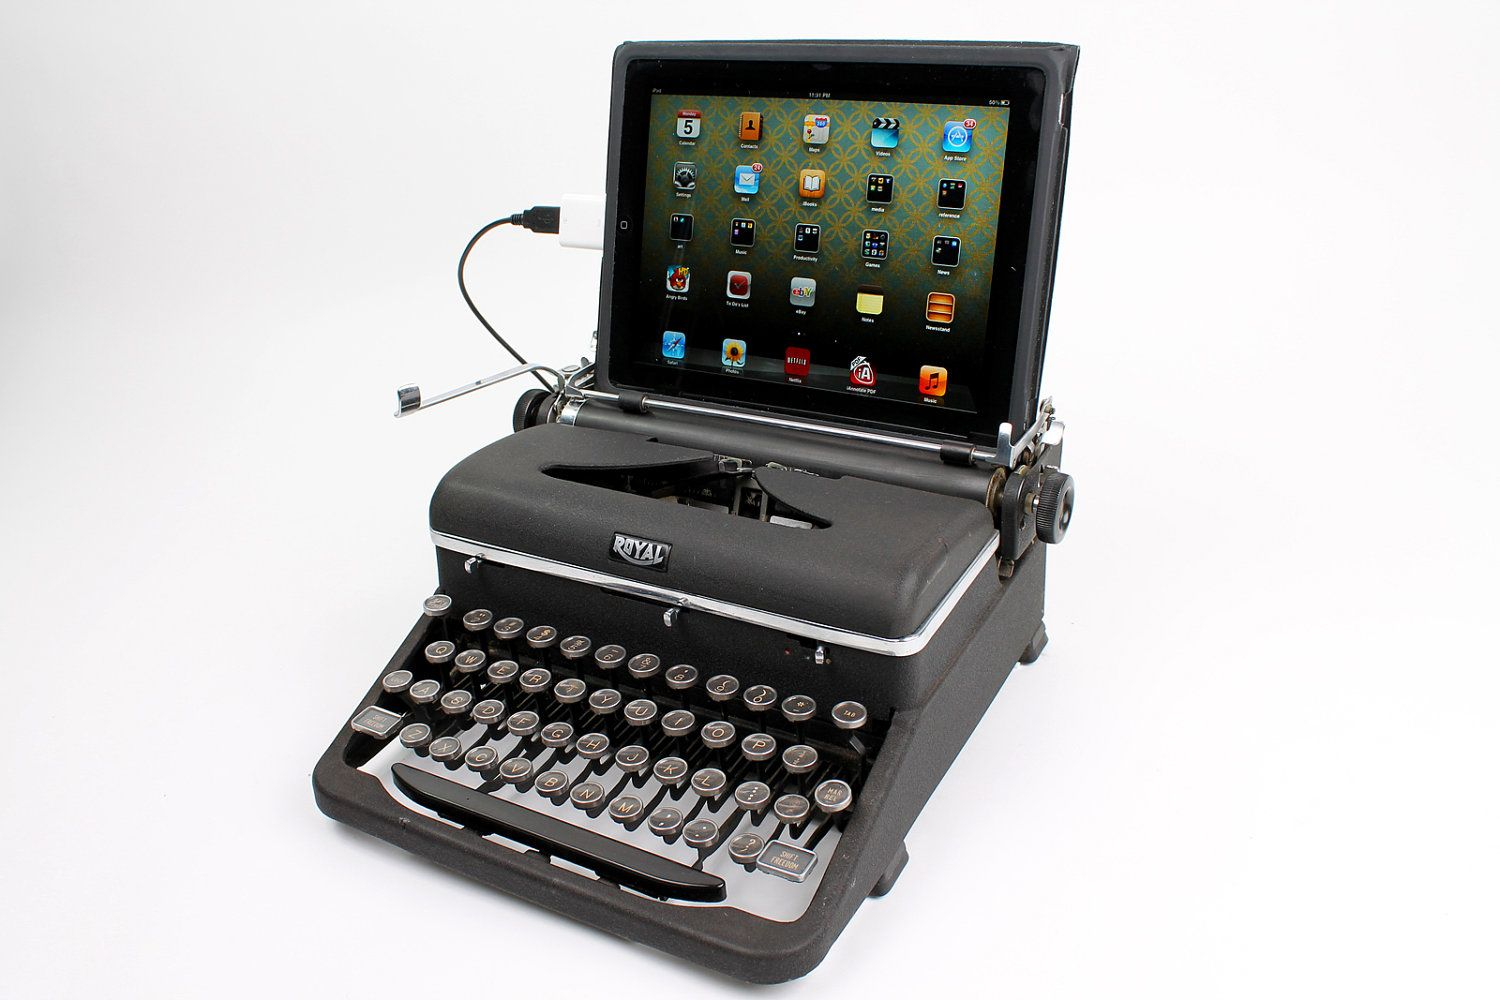 This antique typewriter has been modified to work as a USB Keyboard